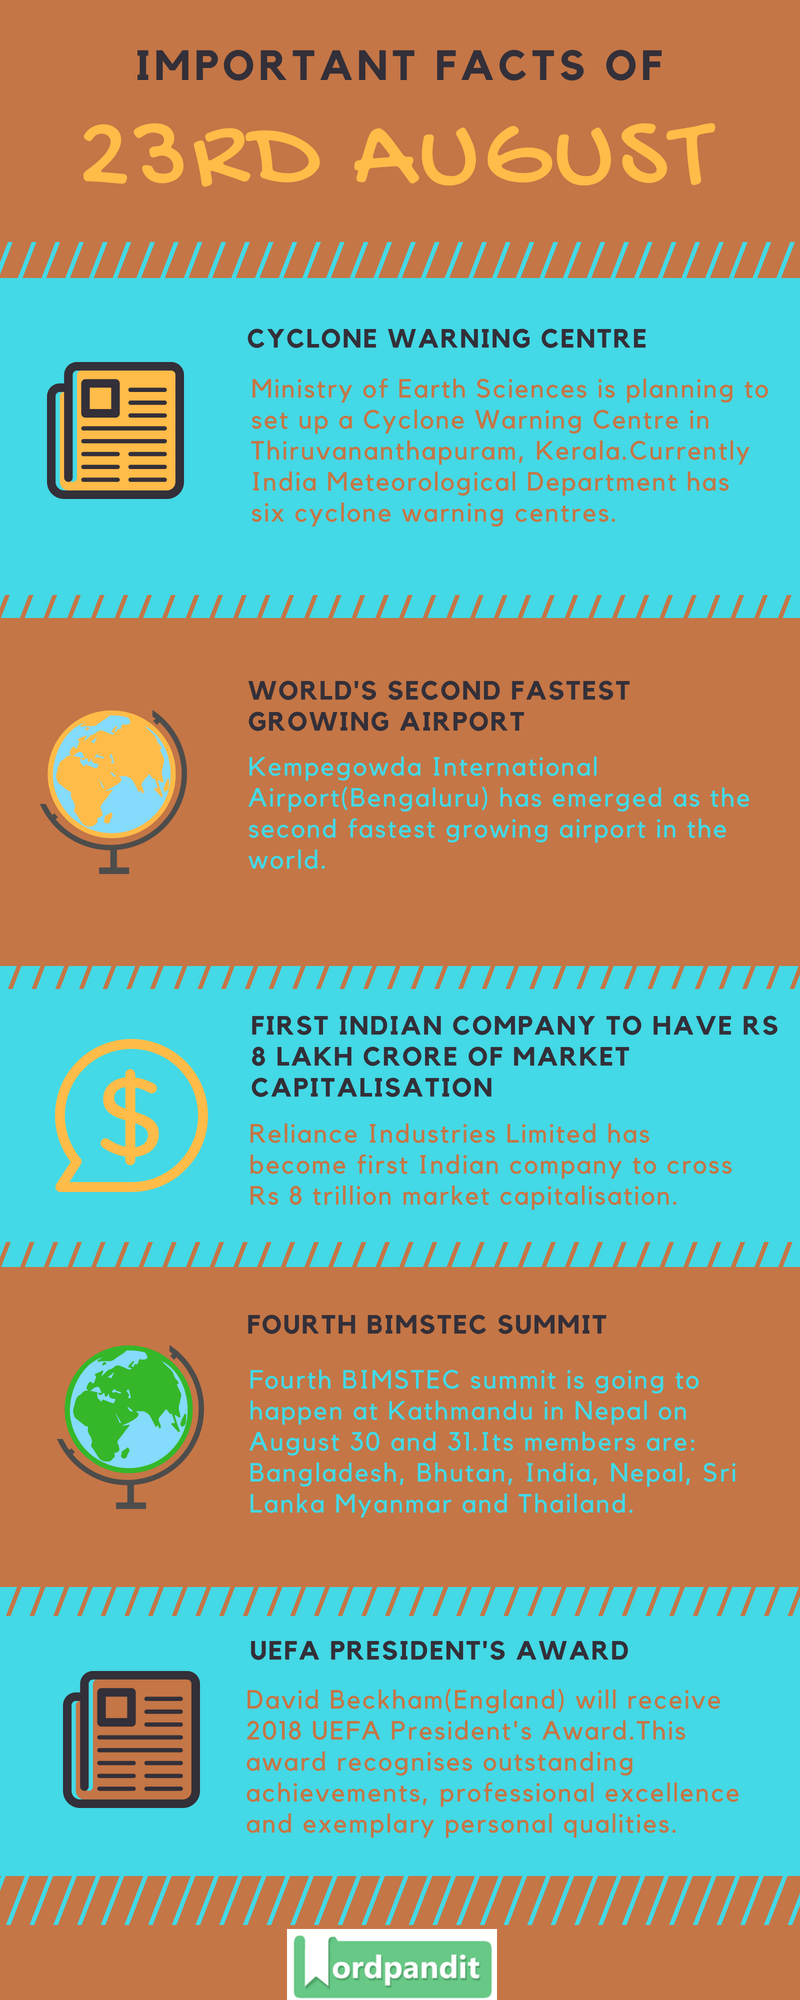 Daily Current Affairs 23 August 2018 Current Affairs Quiz August 23 2018 Current Affairs Infographic